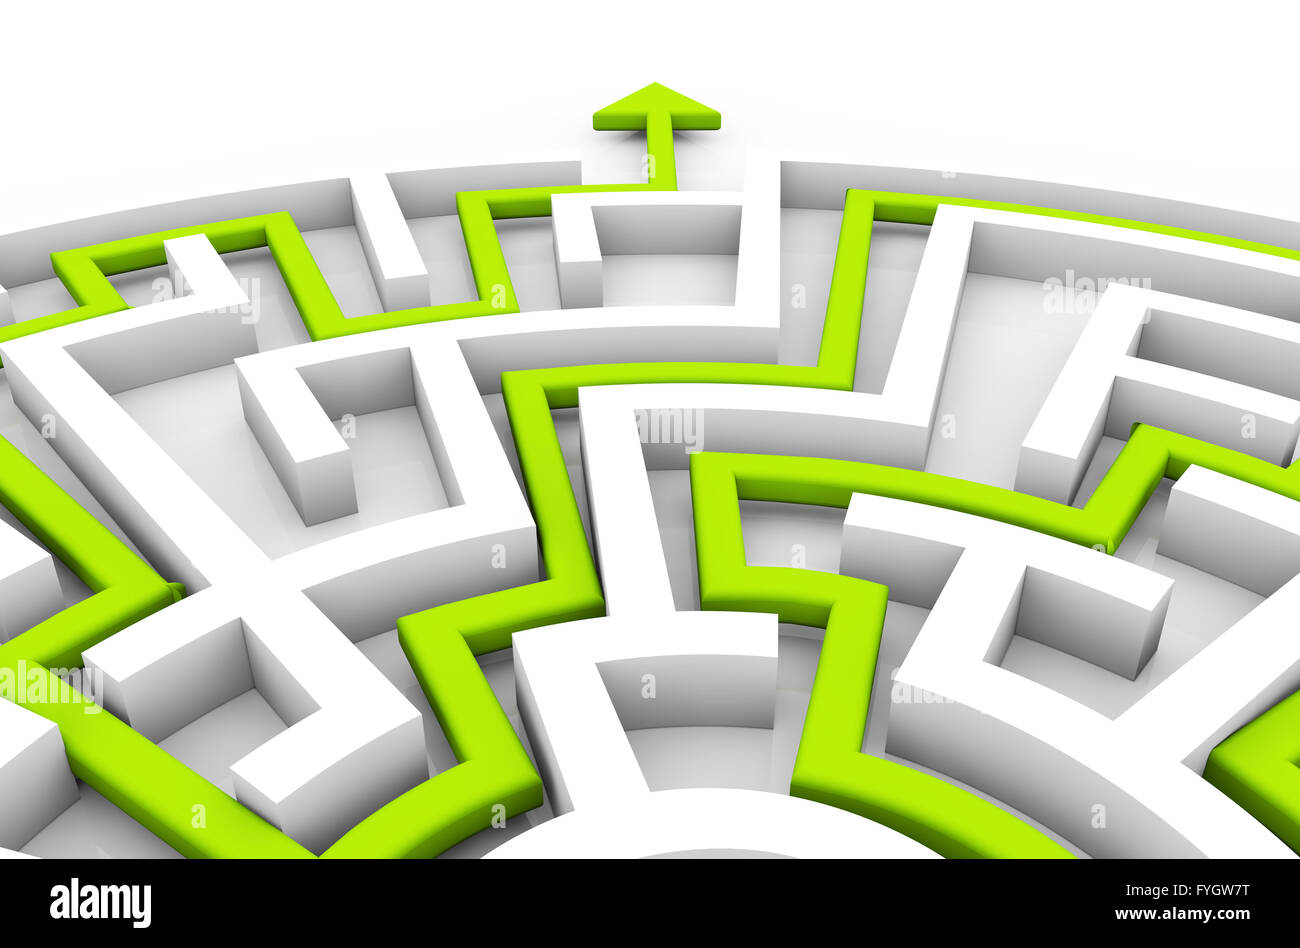 success concept: green arrow path showing a maze exit - Stock Image